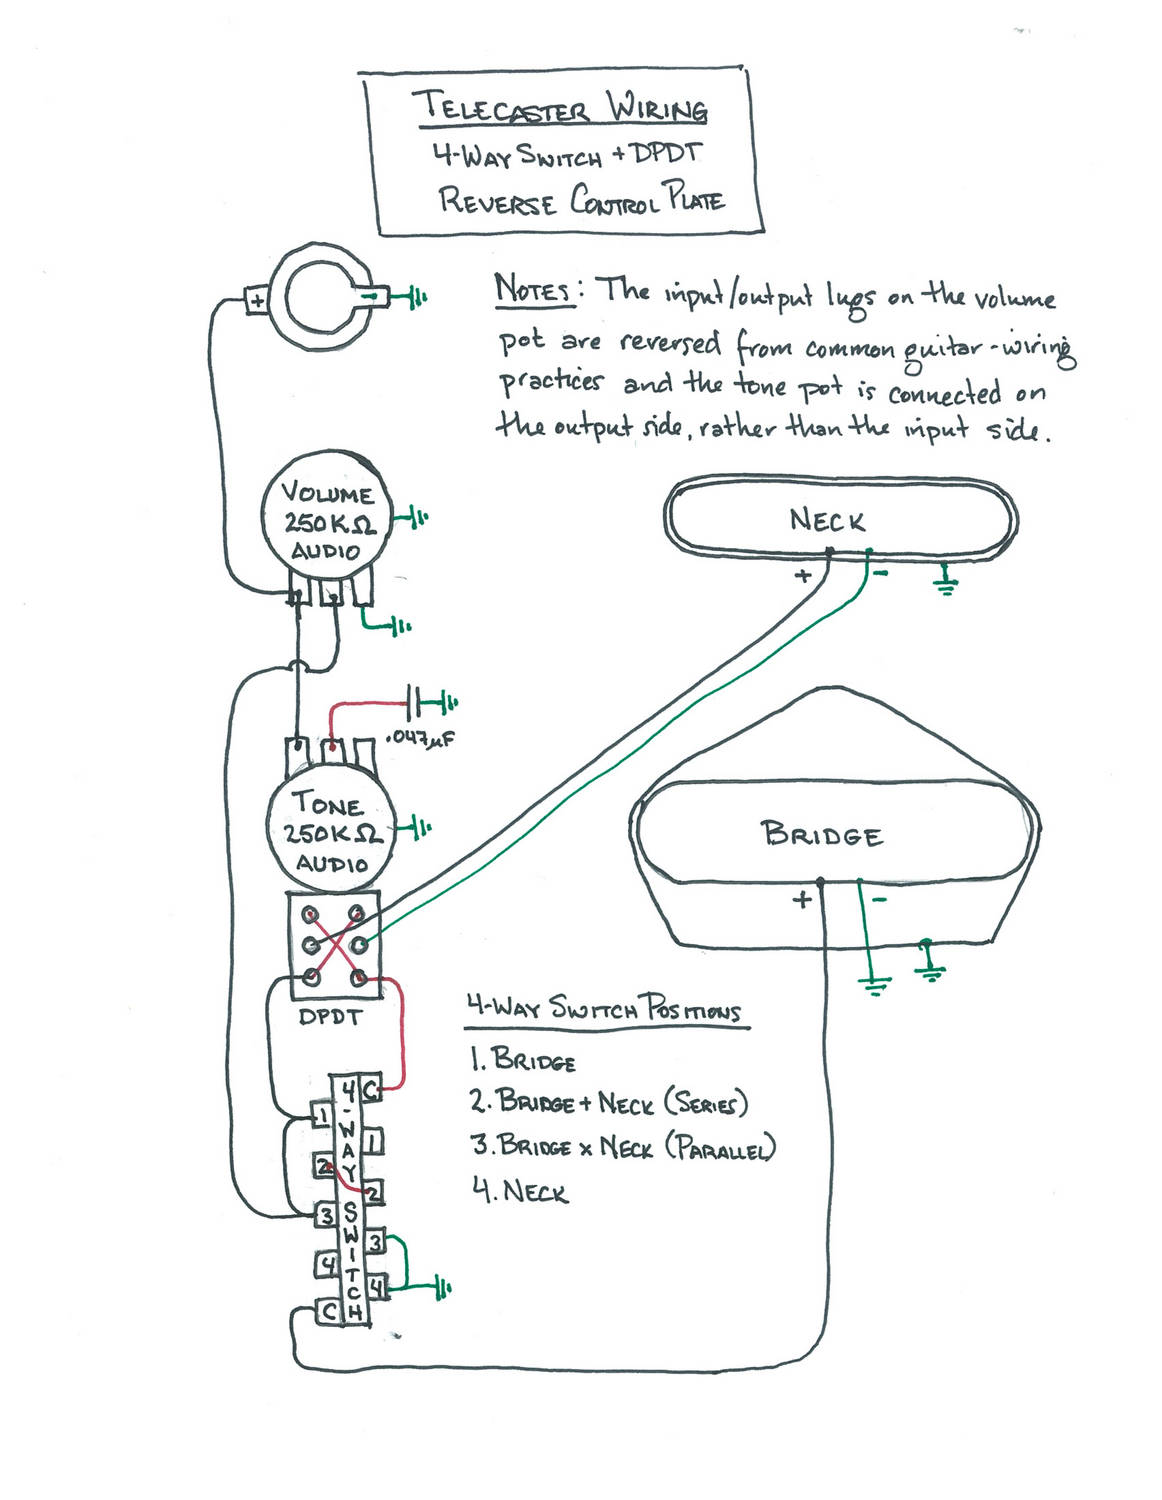 Angela Tele Wiring Diagram - Engine Wiring Diagram on